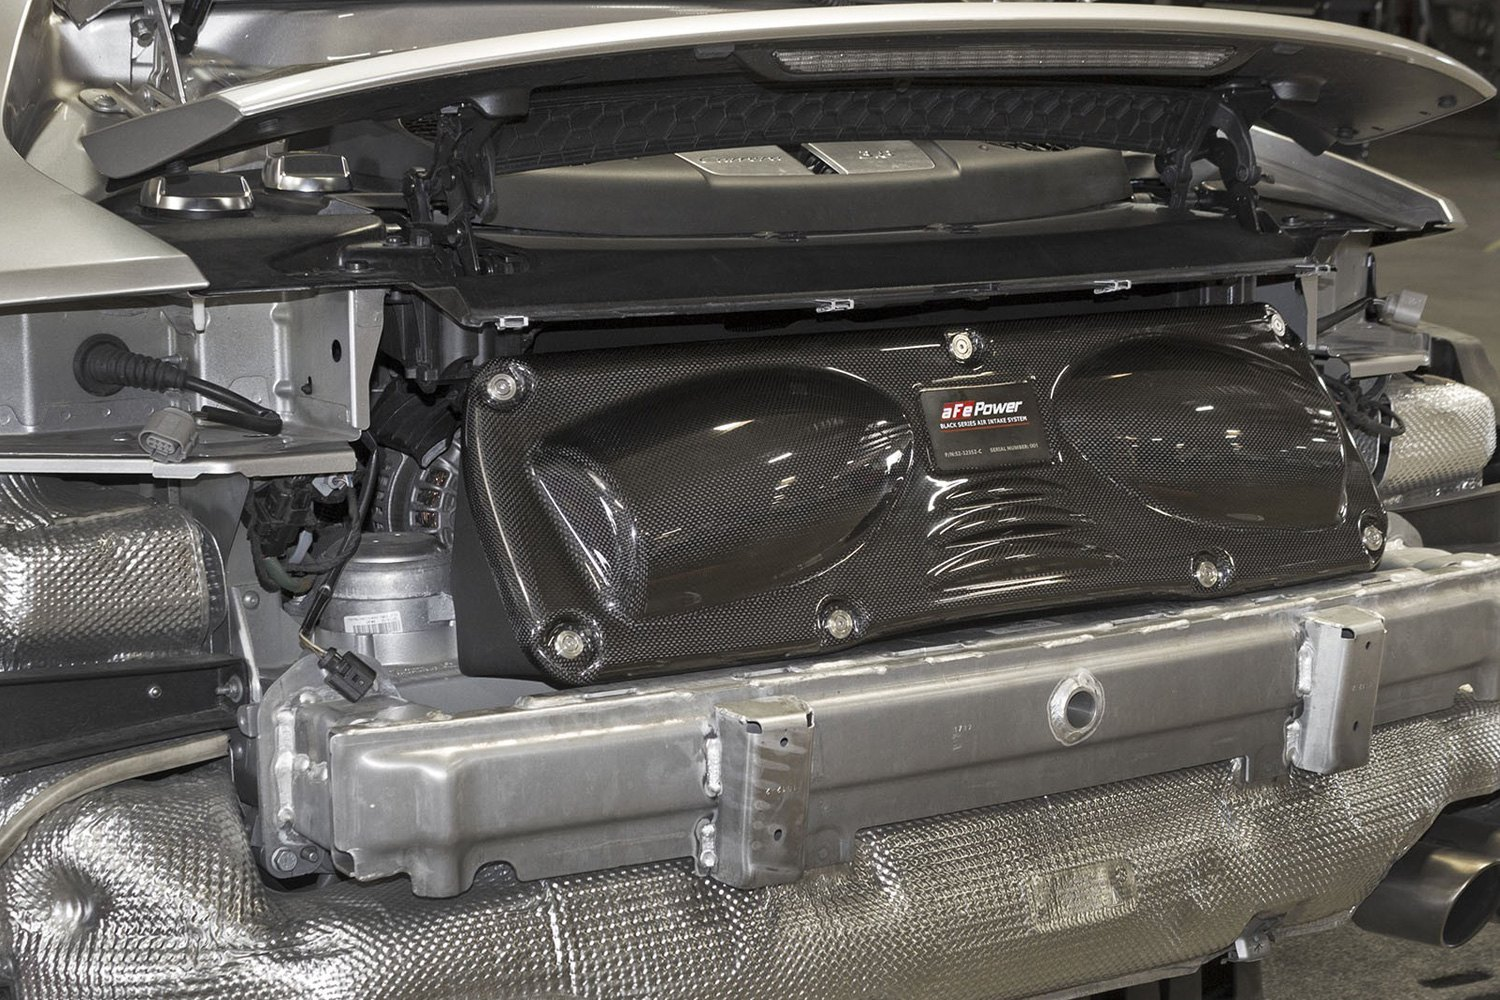 Afe Black Series Stage 2 Carbon Fiber Black Cold Air Intake System With Pro 5r And Pro Dry S Gray Filter